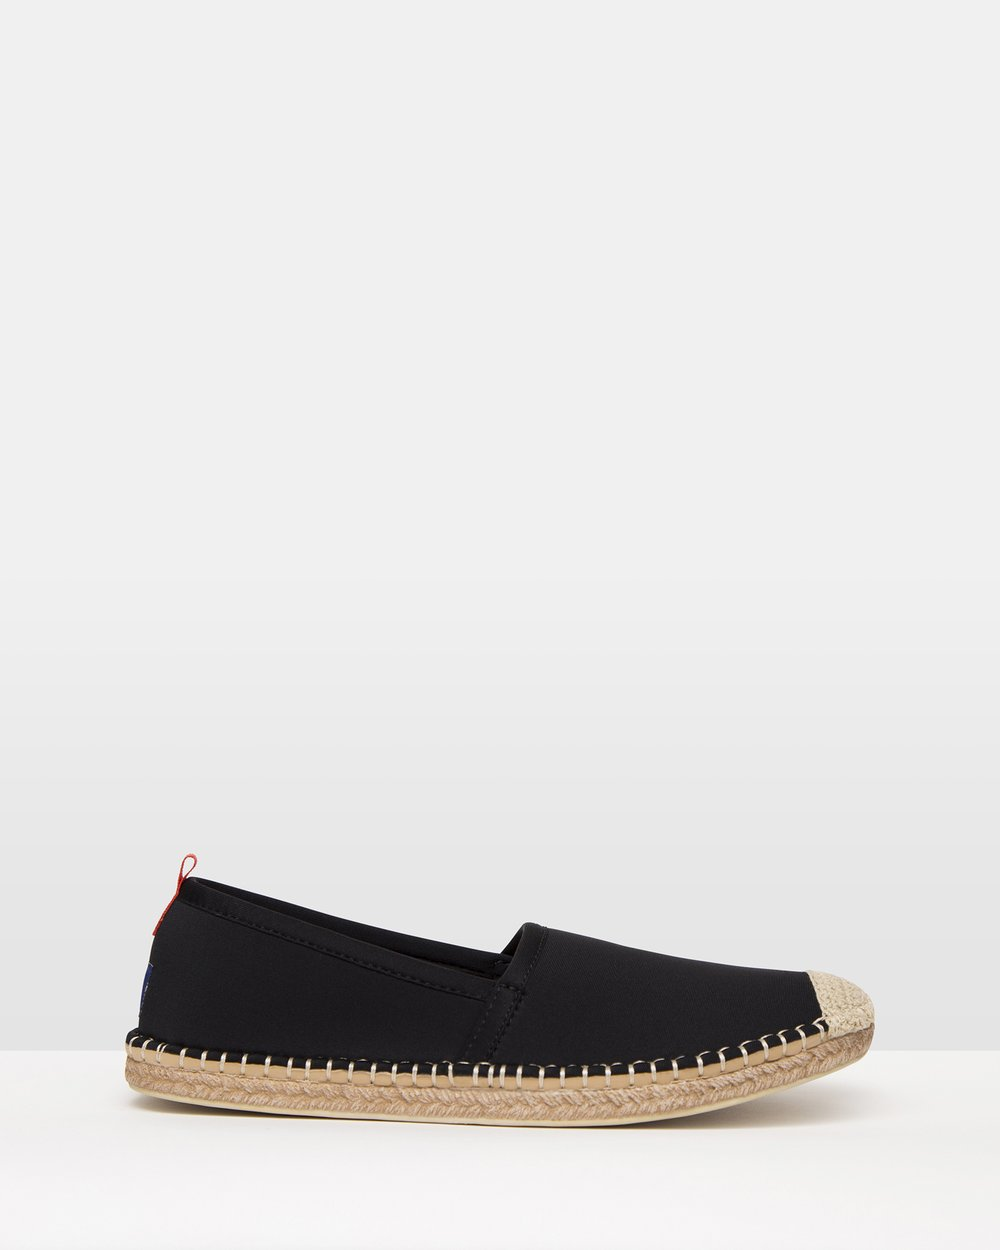 b003da15a7e9 Neoprene Beachcomber Espadrilles by Sea Star Beachwear Online